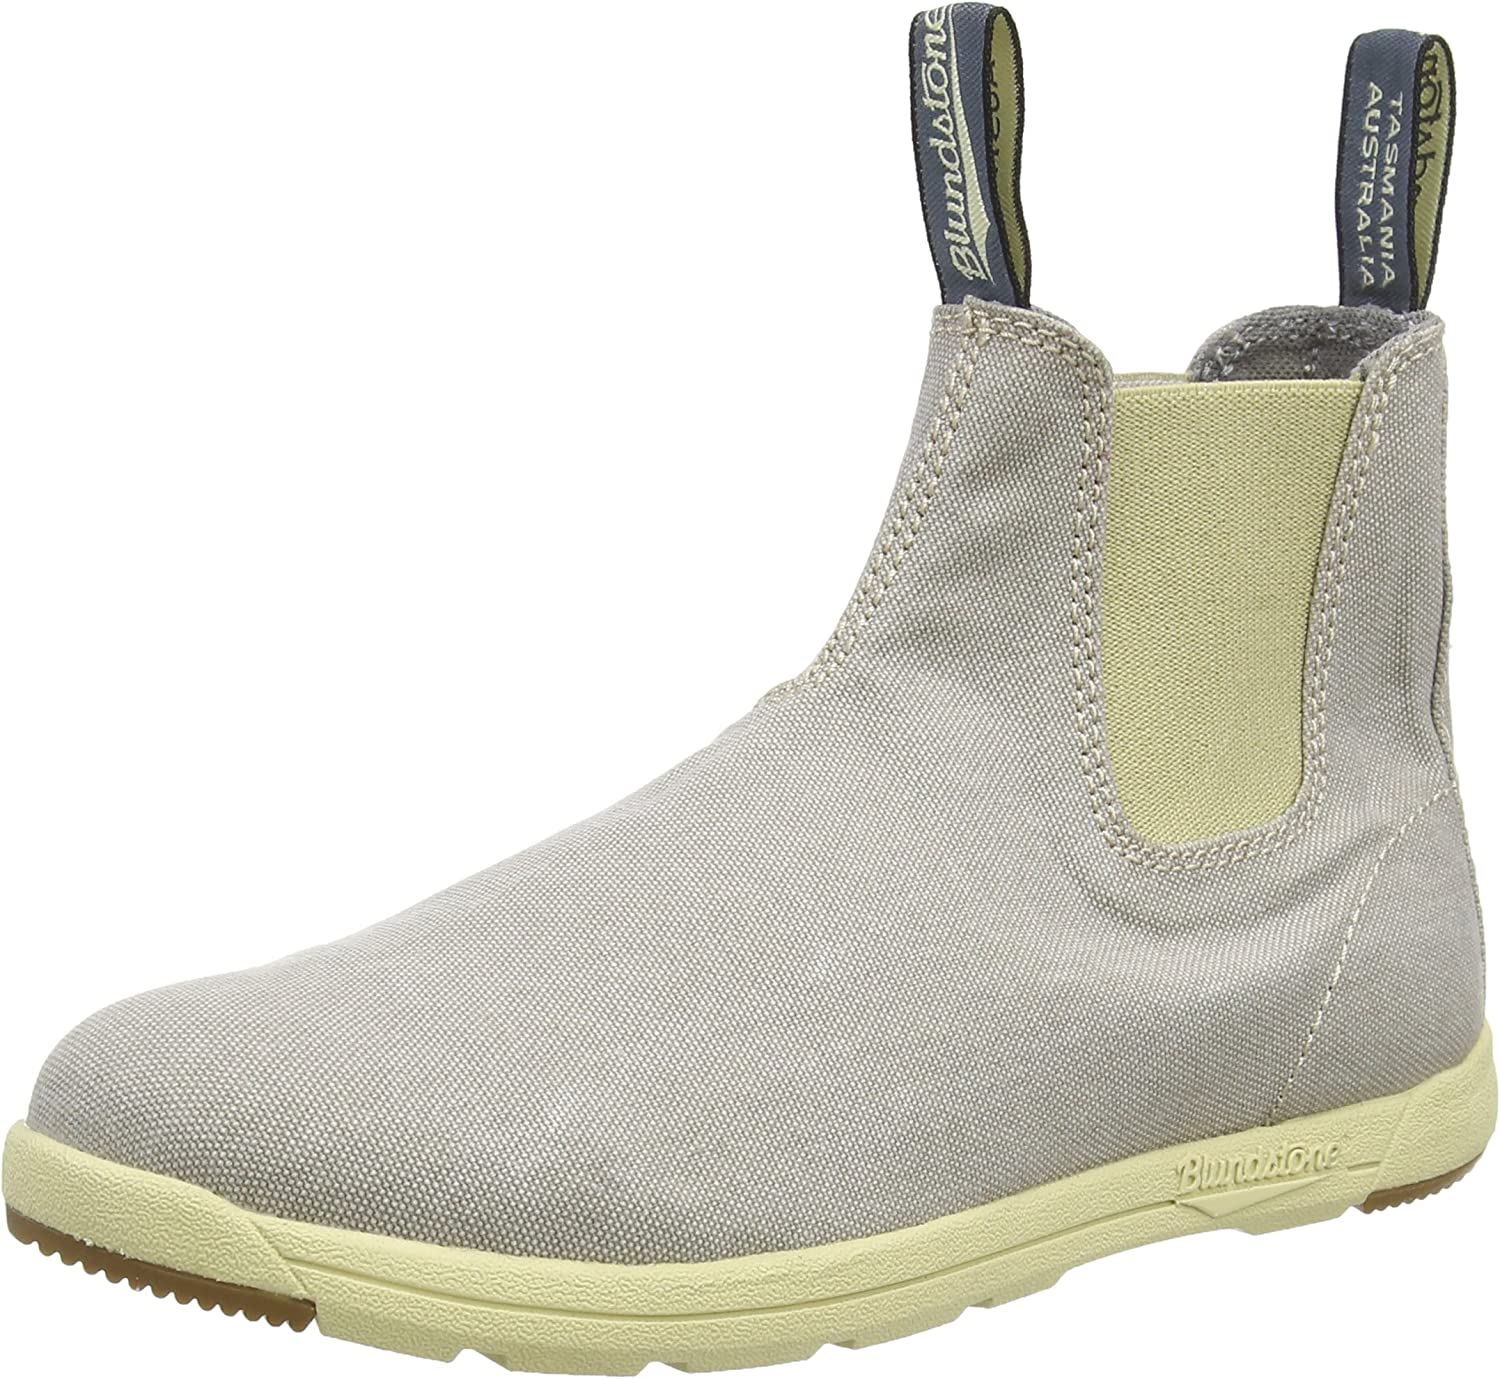 bluendstone 1421 - Canvas, Unisex Adults' Chelsea Boots